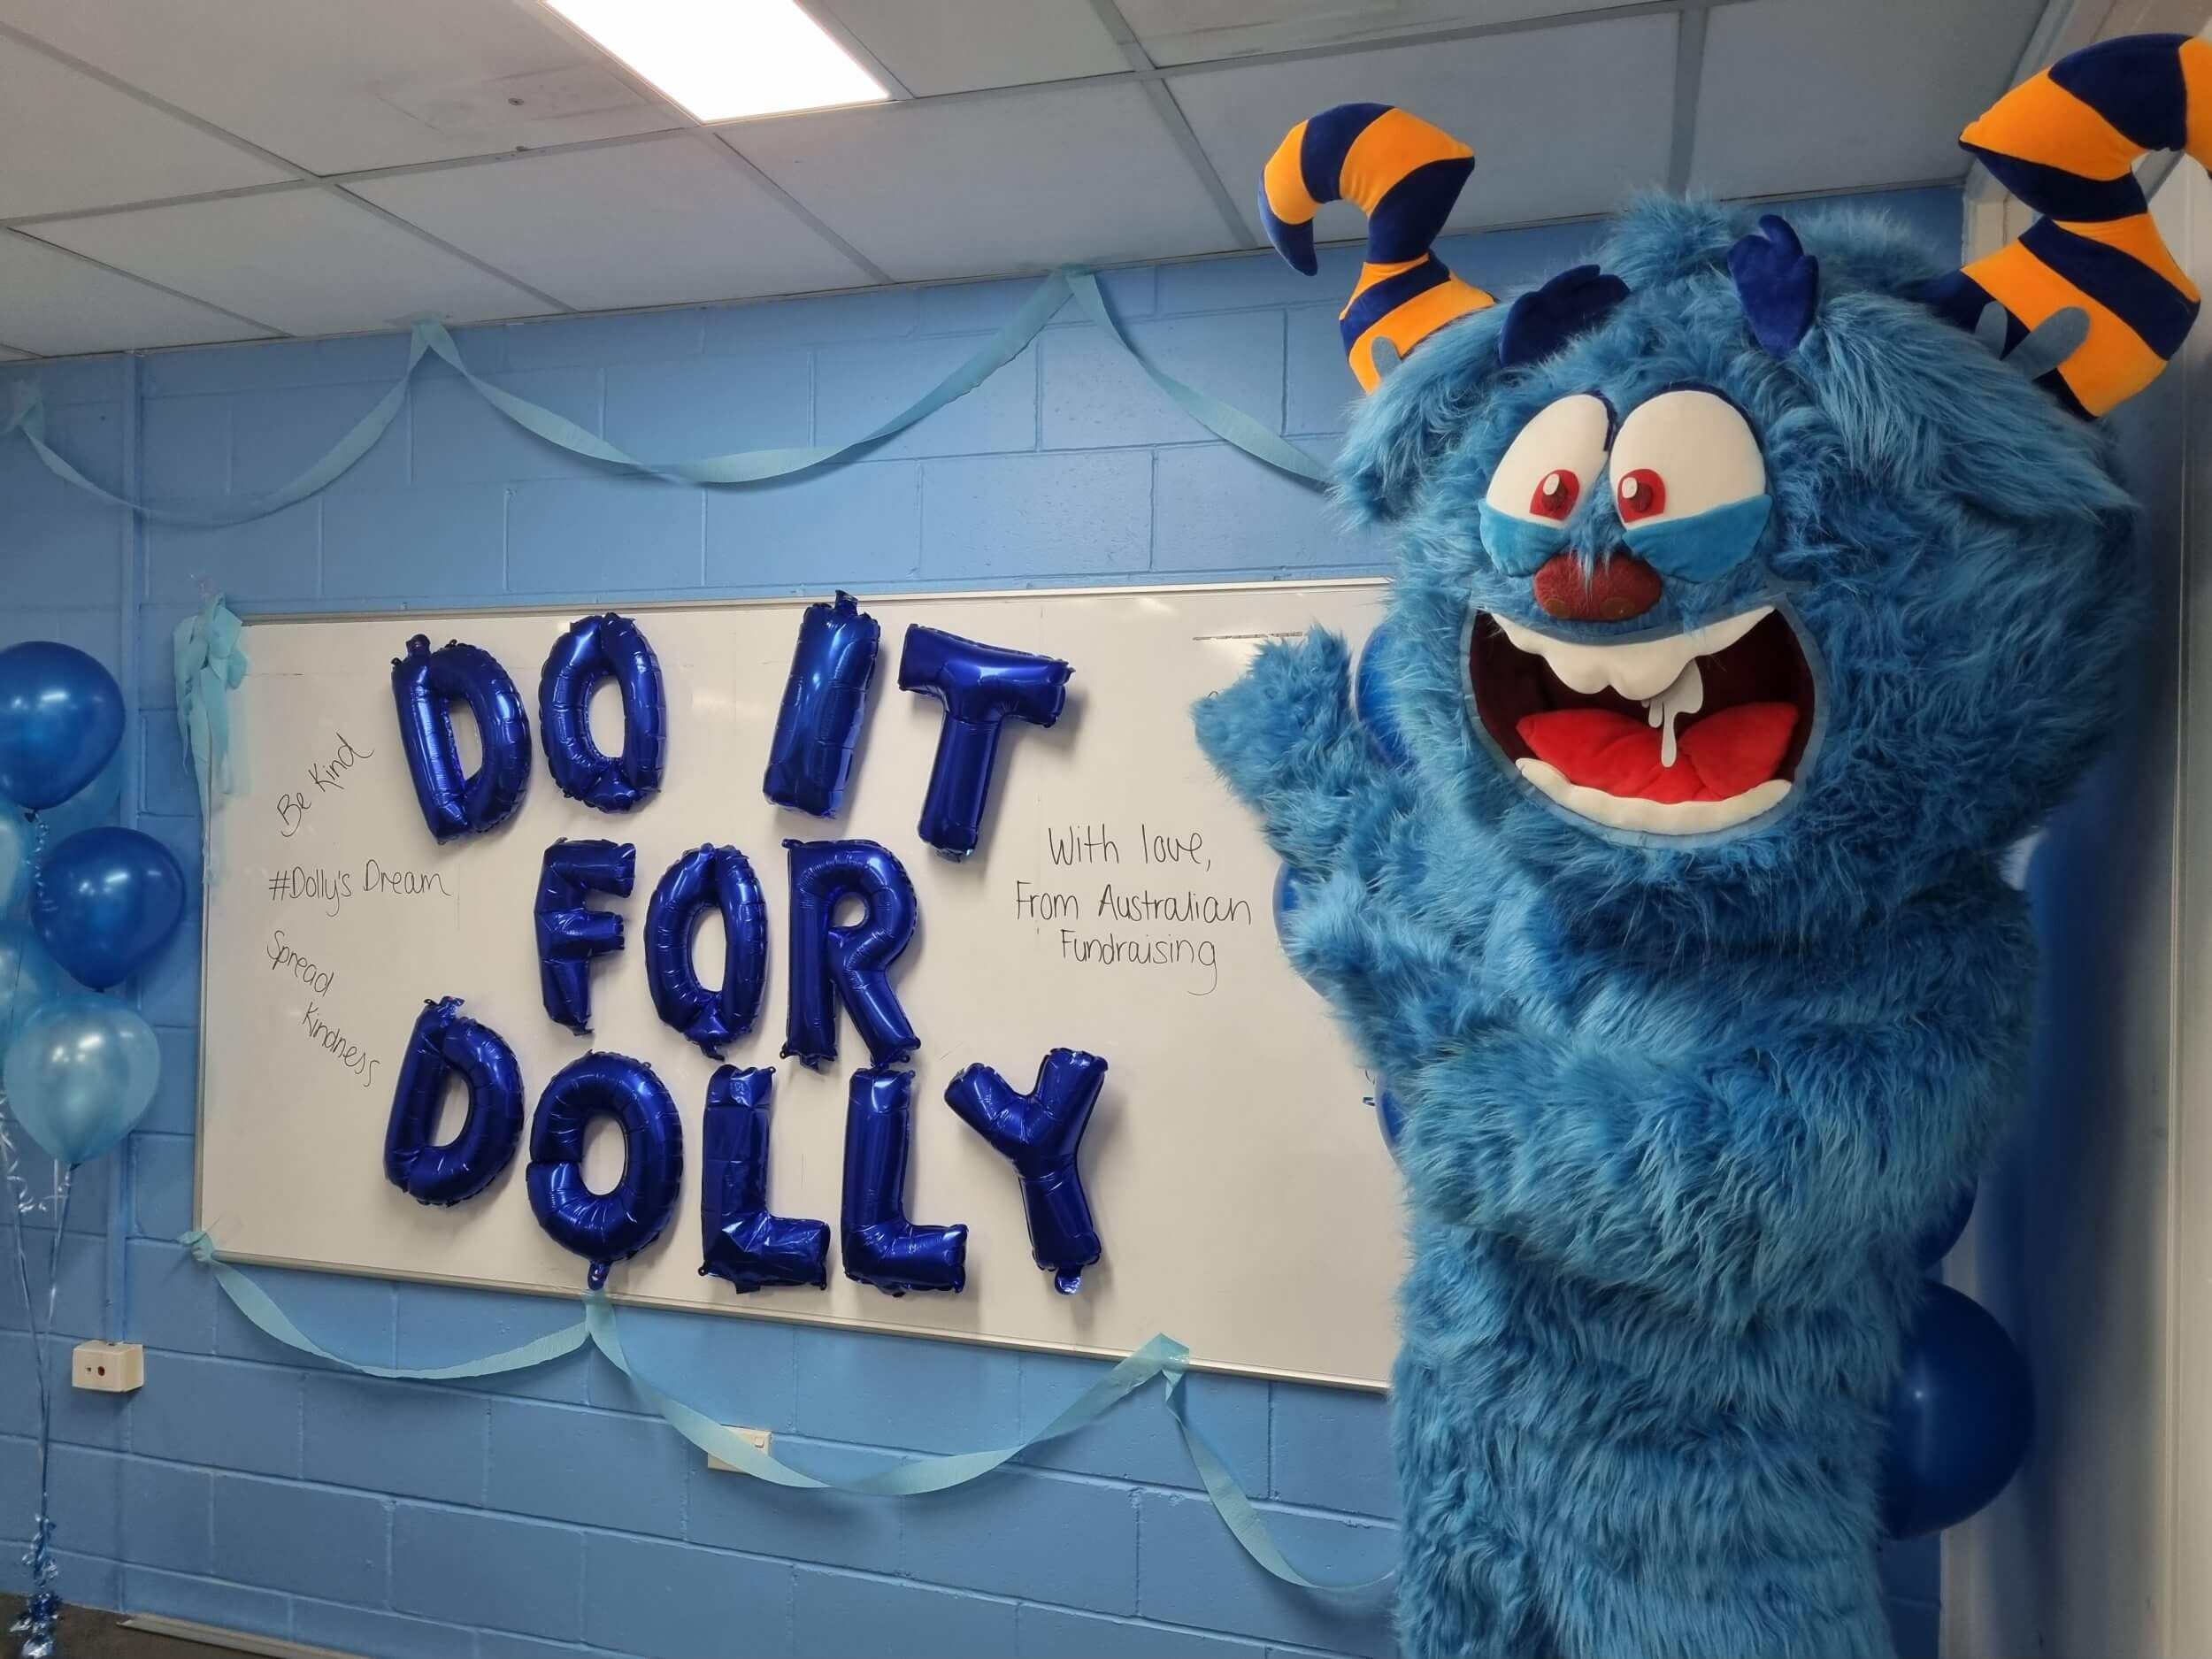 Even our Monster got in on the action for Do it for Dolly Day!